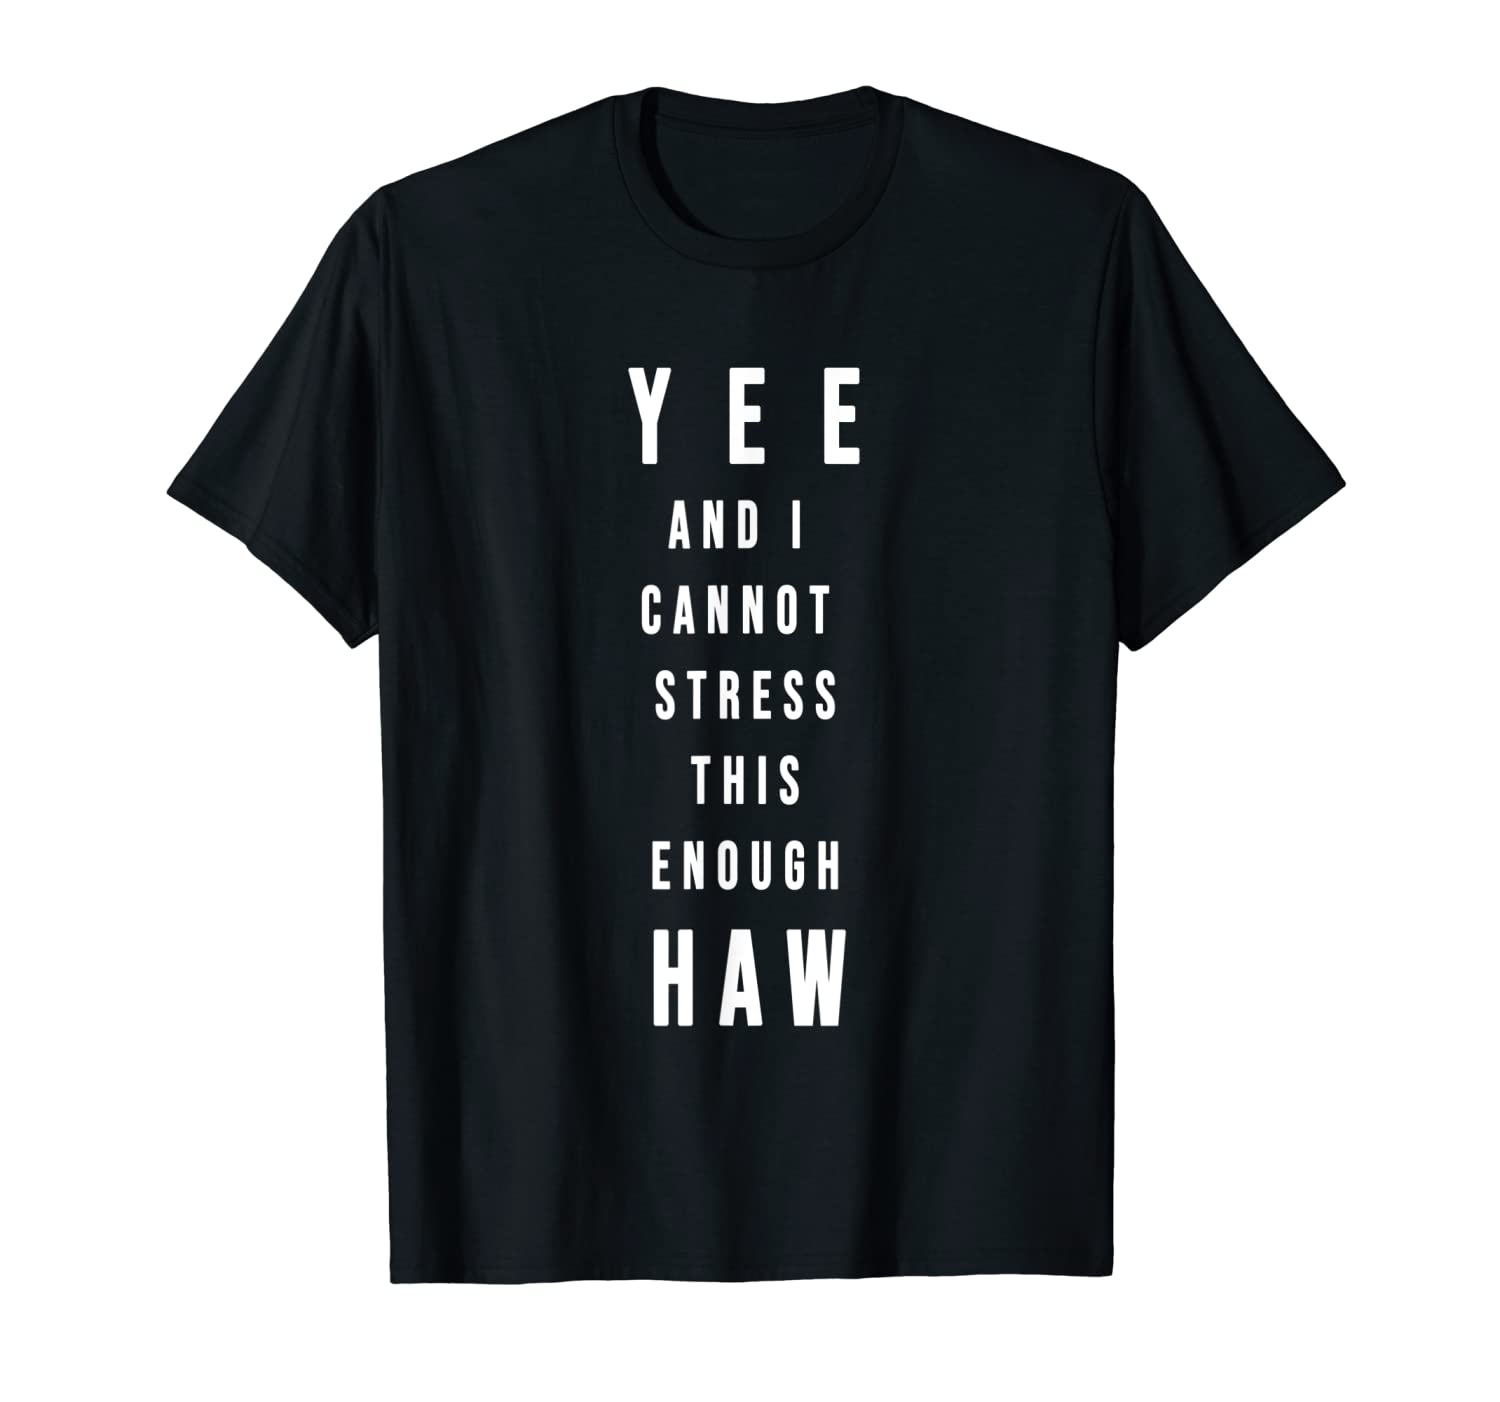 YEE and I Cannot Stress This Enough HAW - Funny Yeehaw T-Shirt